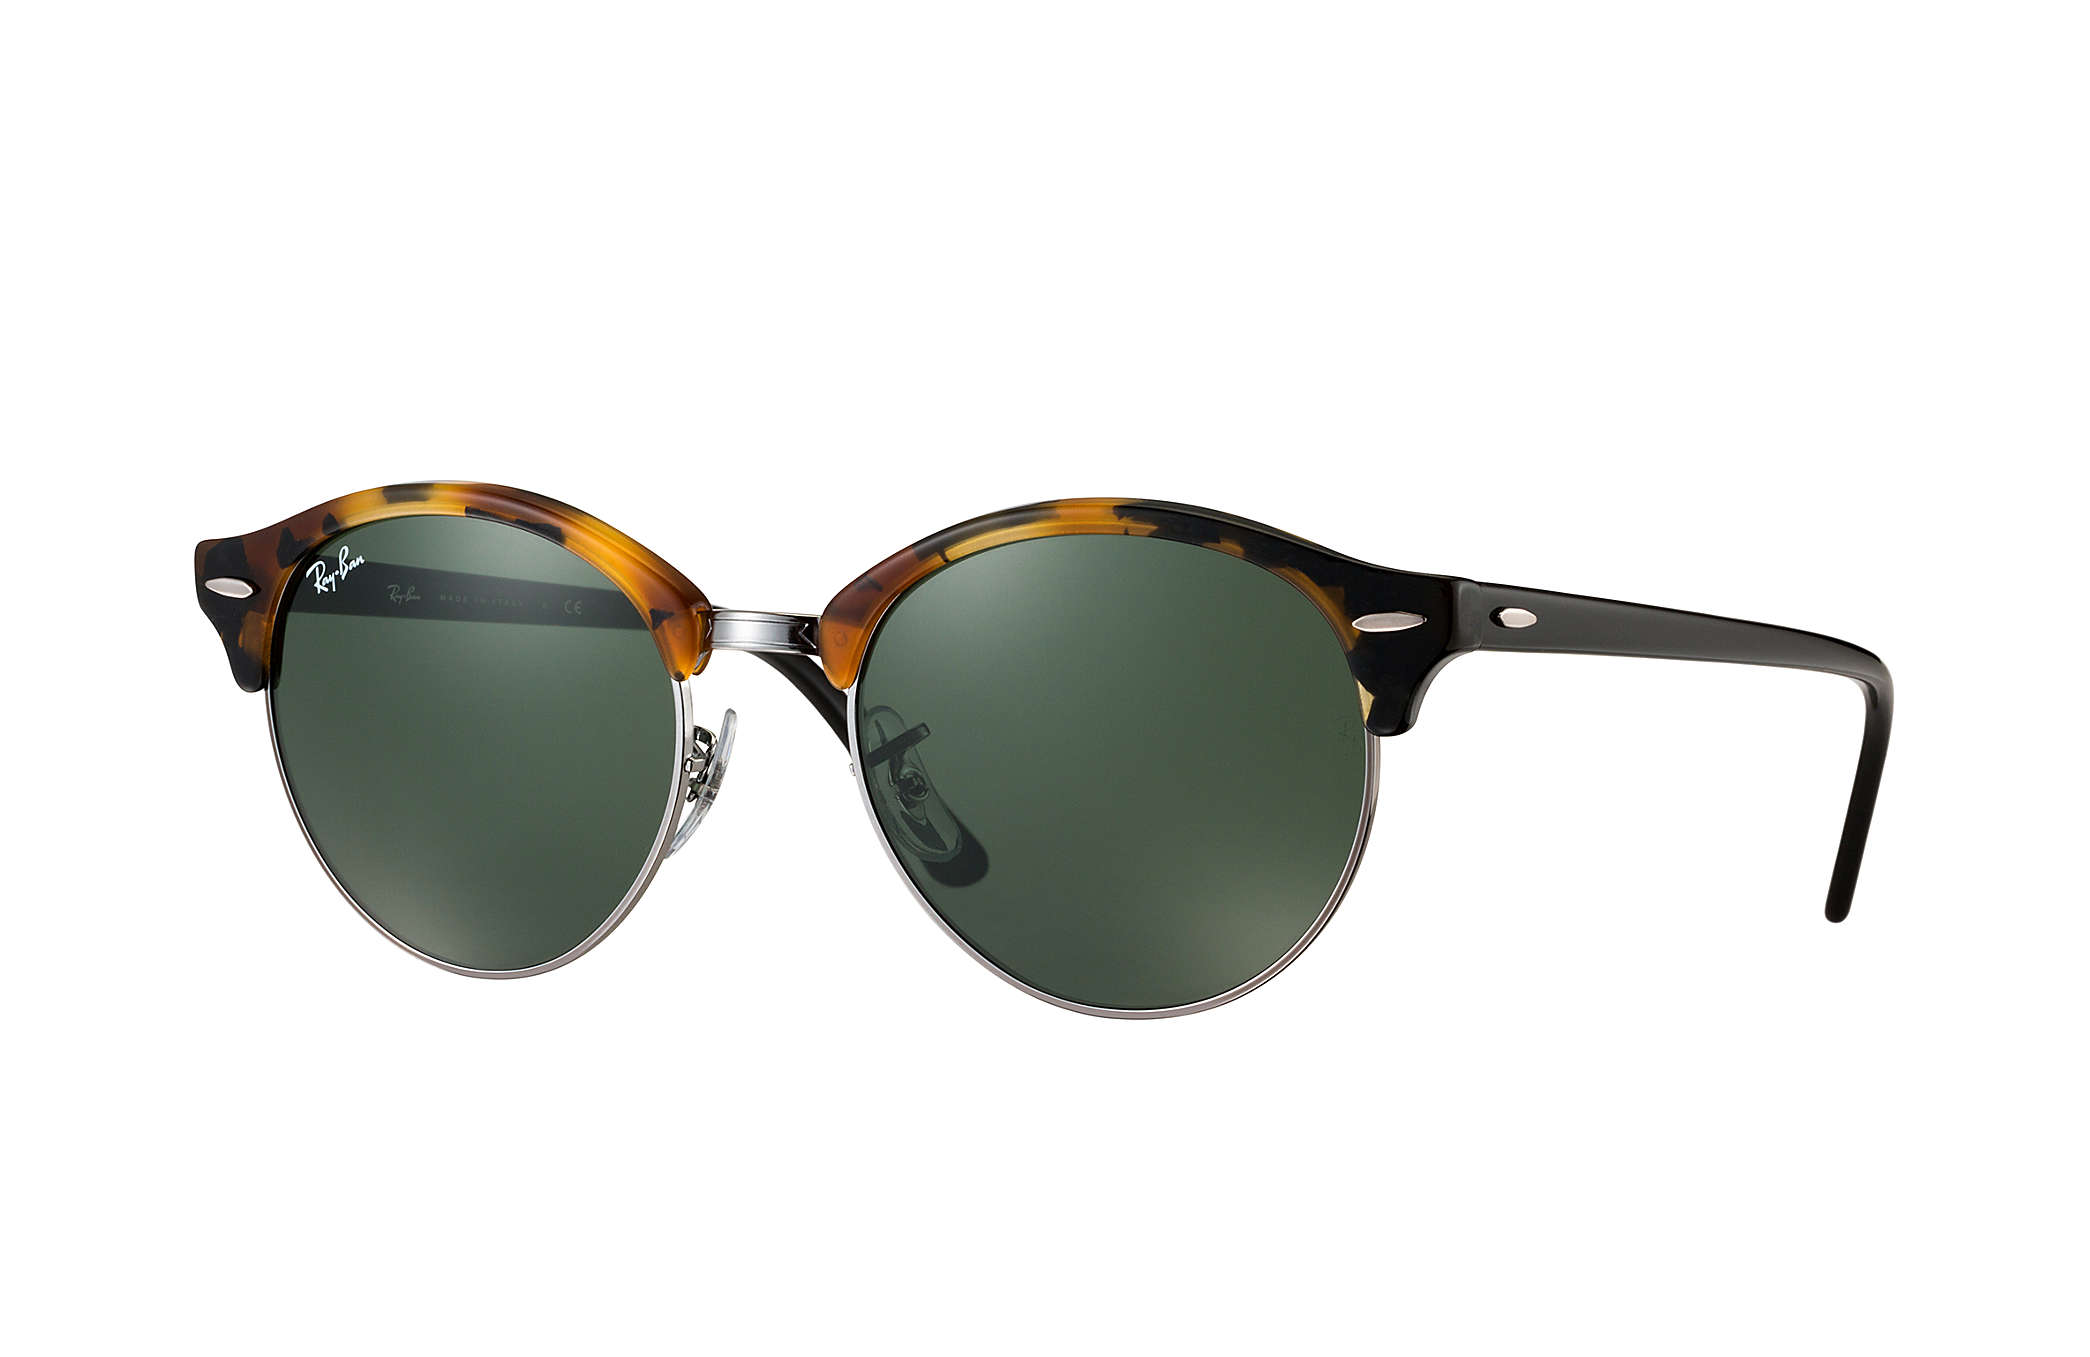 9f145baf4a Ray-Ban Clubround Classic RB4246 Tortoise - Acetate - Green Lenses ...